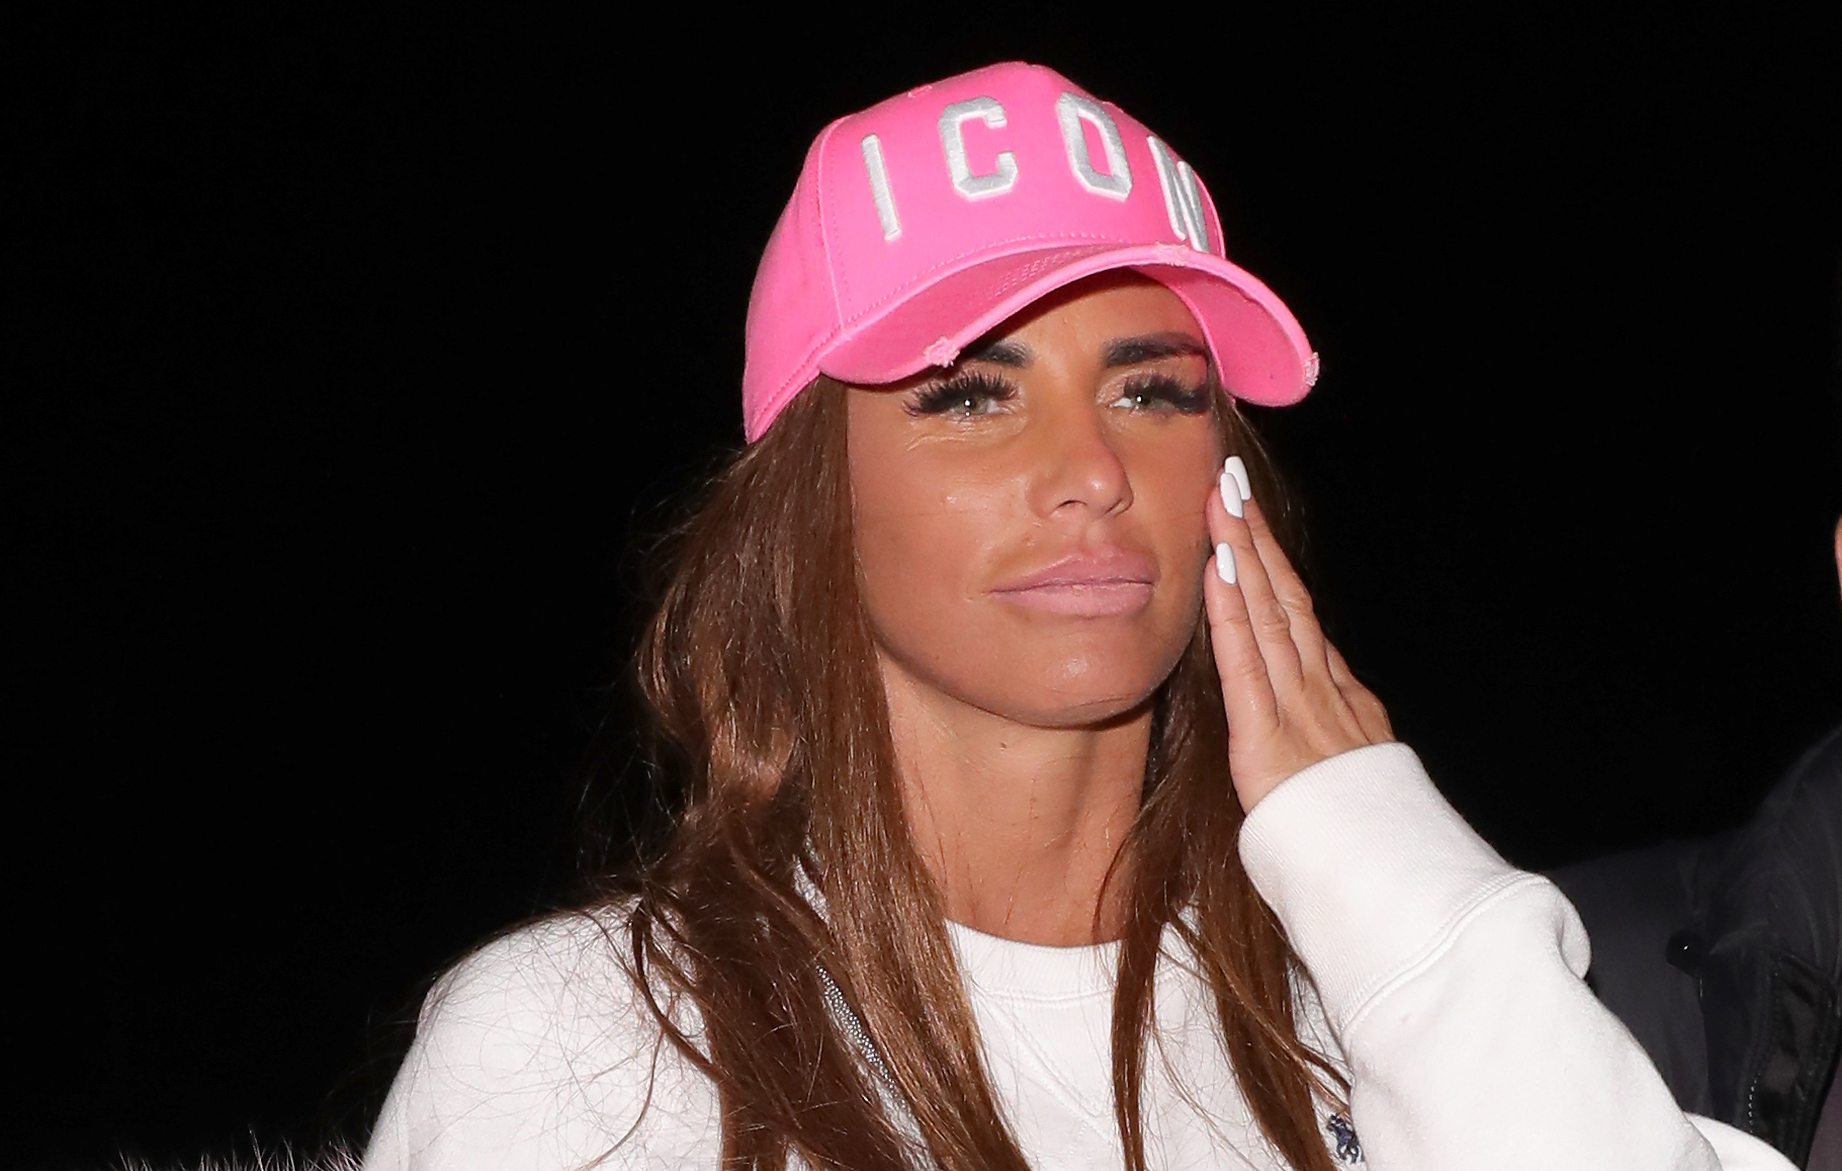 Katie Price pitches 'DIY SOS' style programme to TV channels to help save her 'mucky mansion'